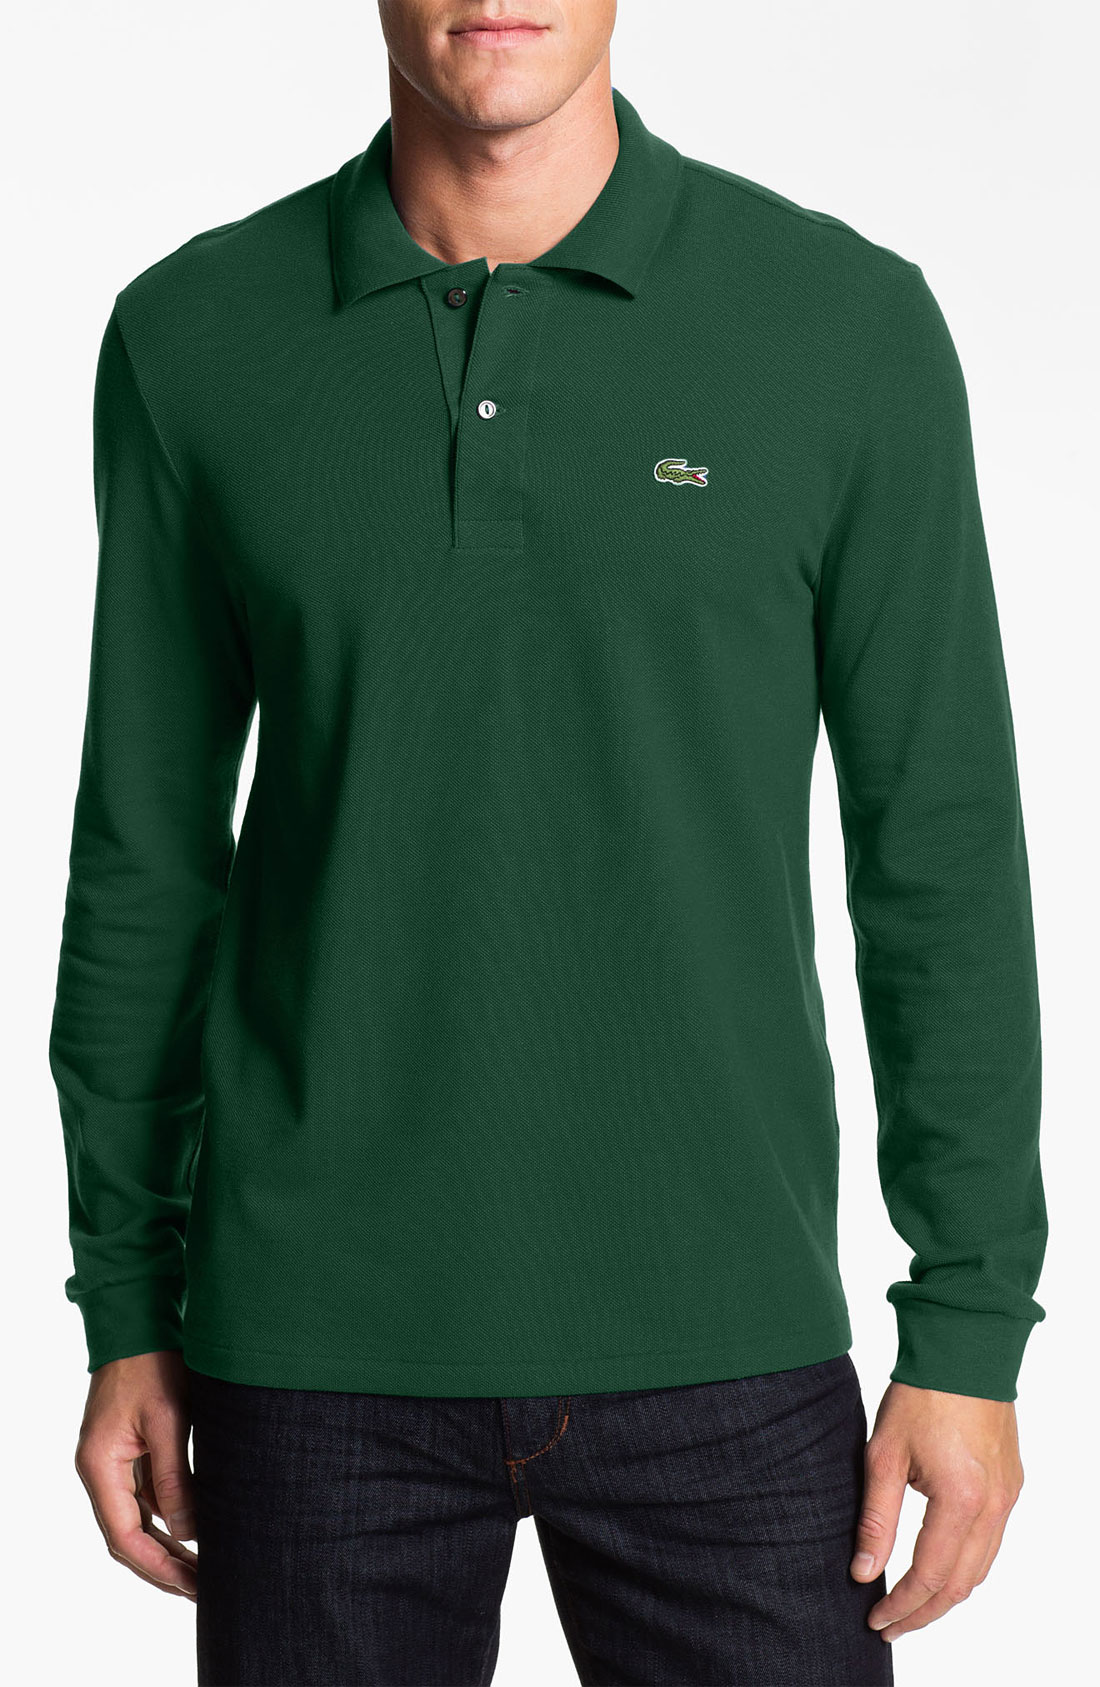 Shop for long sleeve green shirt online at Target. Free shipping on purchases over $35 and save 5% every day with your Target REDcard.